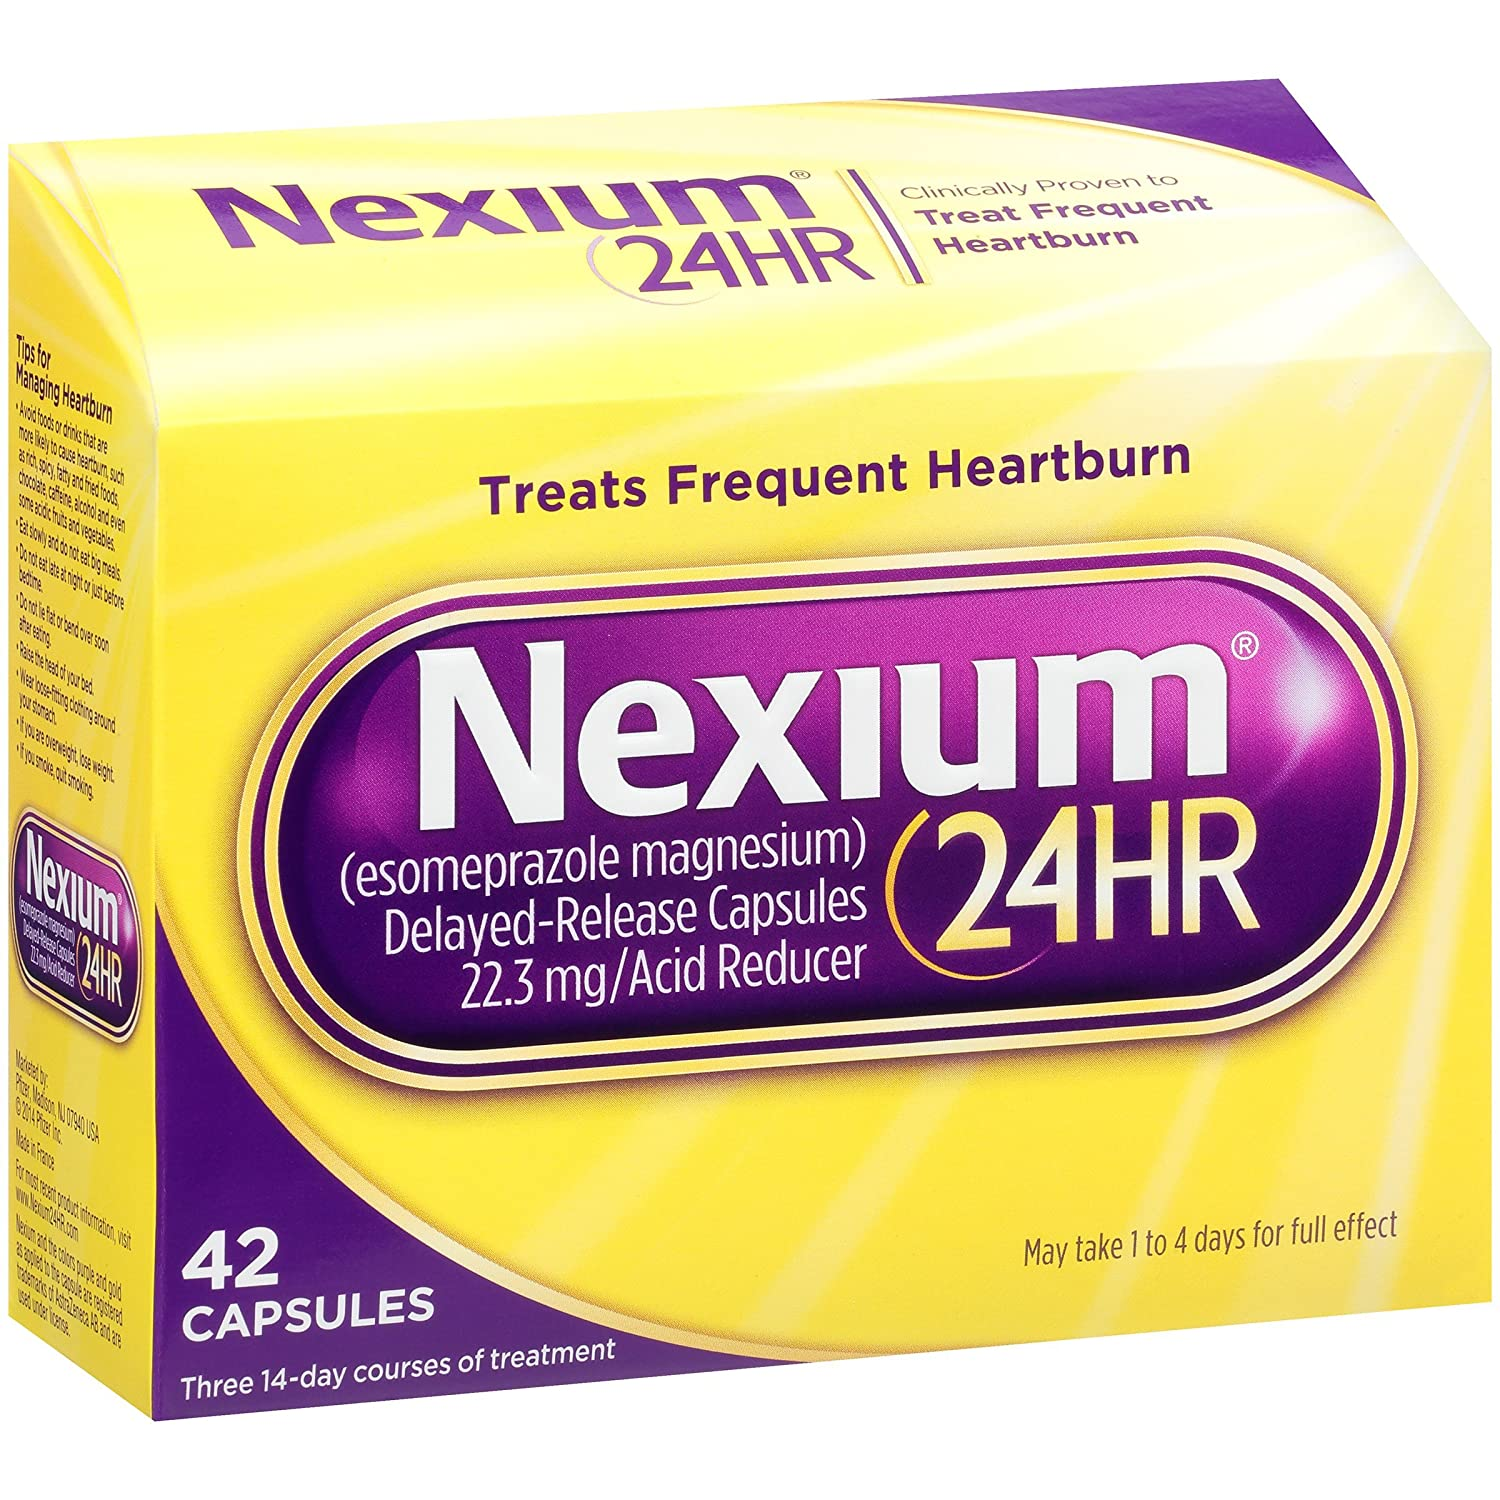 Heartburn Medicines: The Most Effective 82